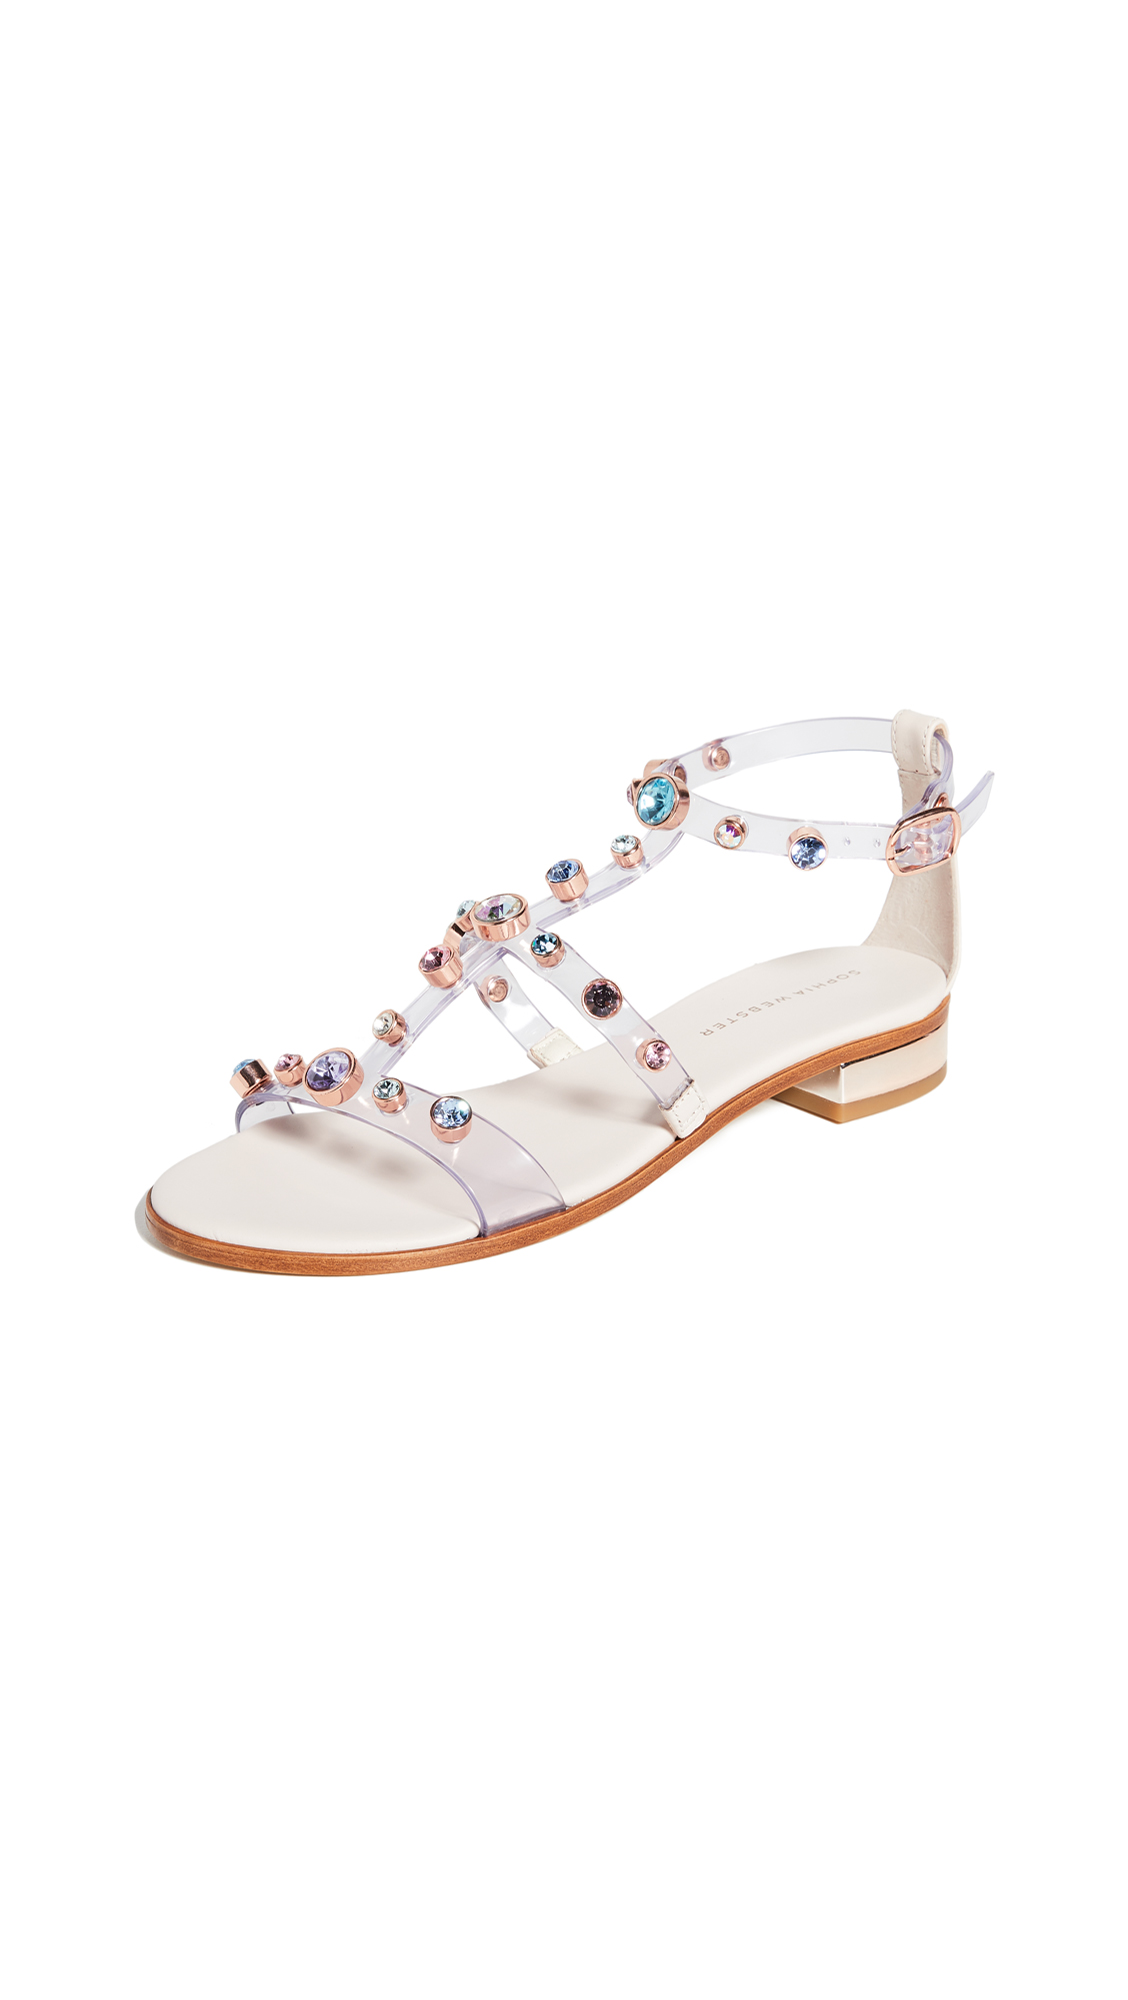 Sophia Webster Dina Gem Flat Sandals In Dusty/pastel